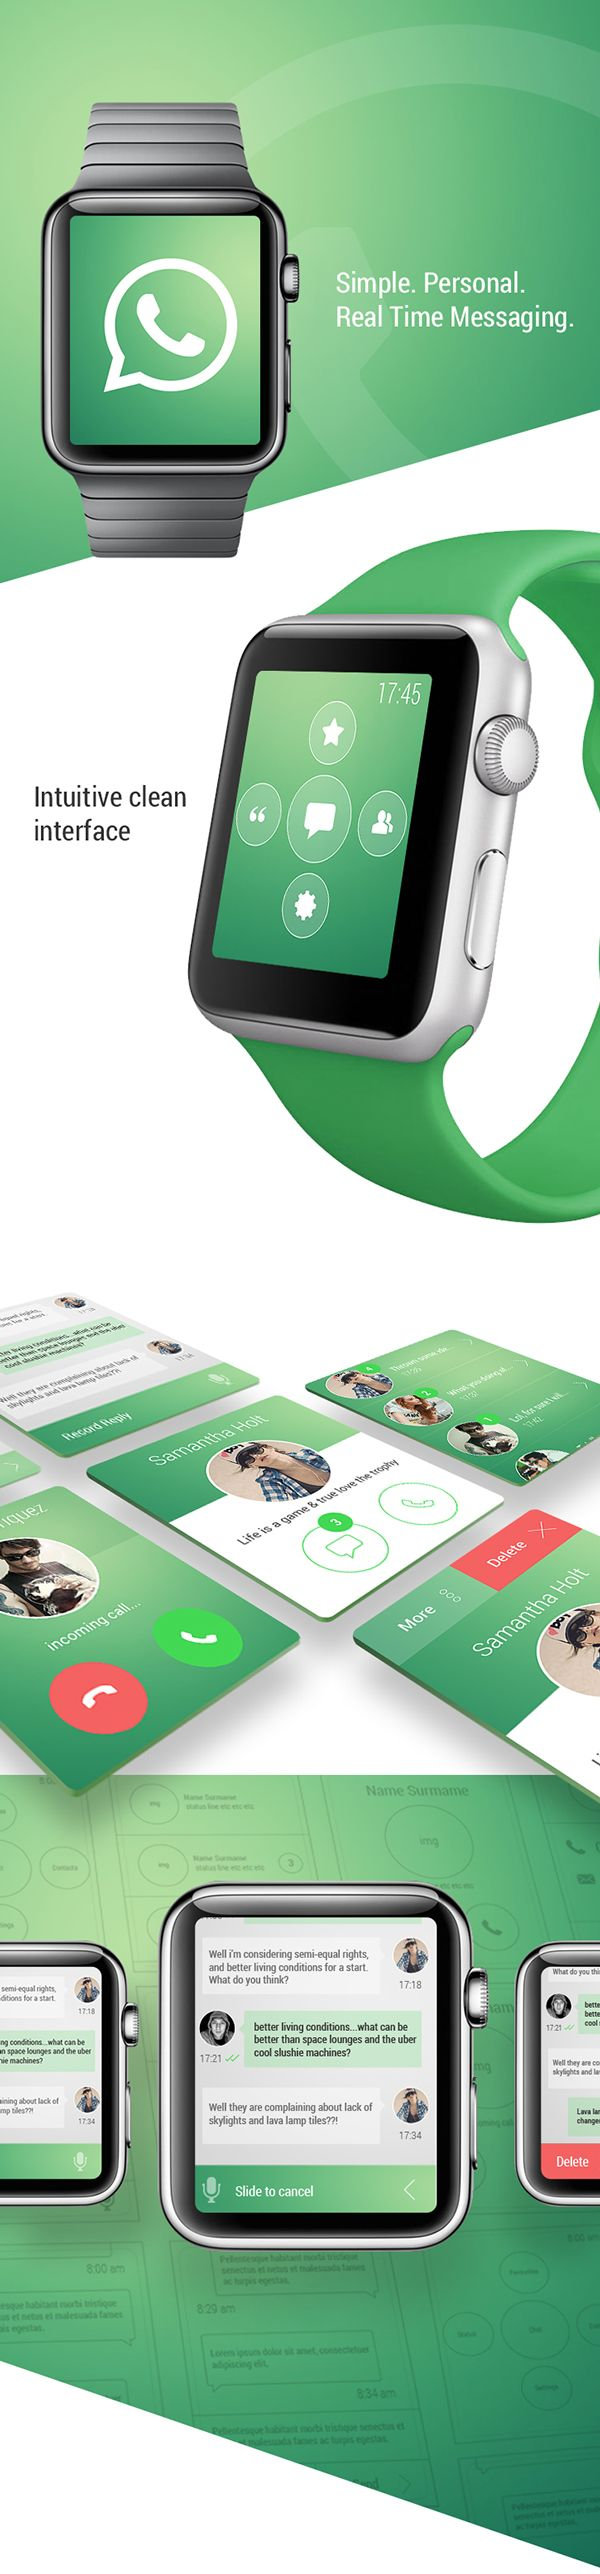 WhatsApp iWatch Concept on Behance [Insp. UI/UX